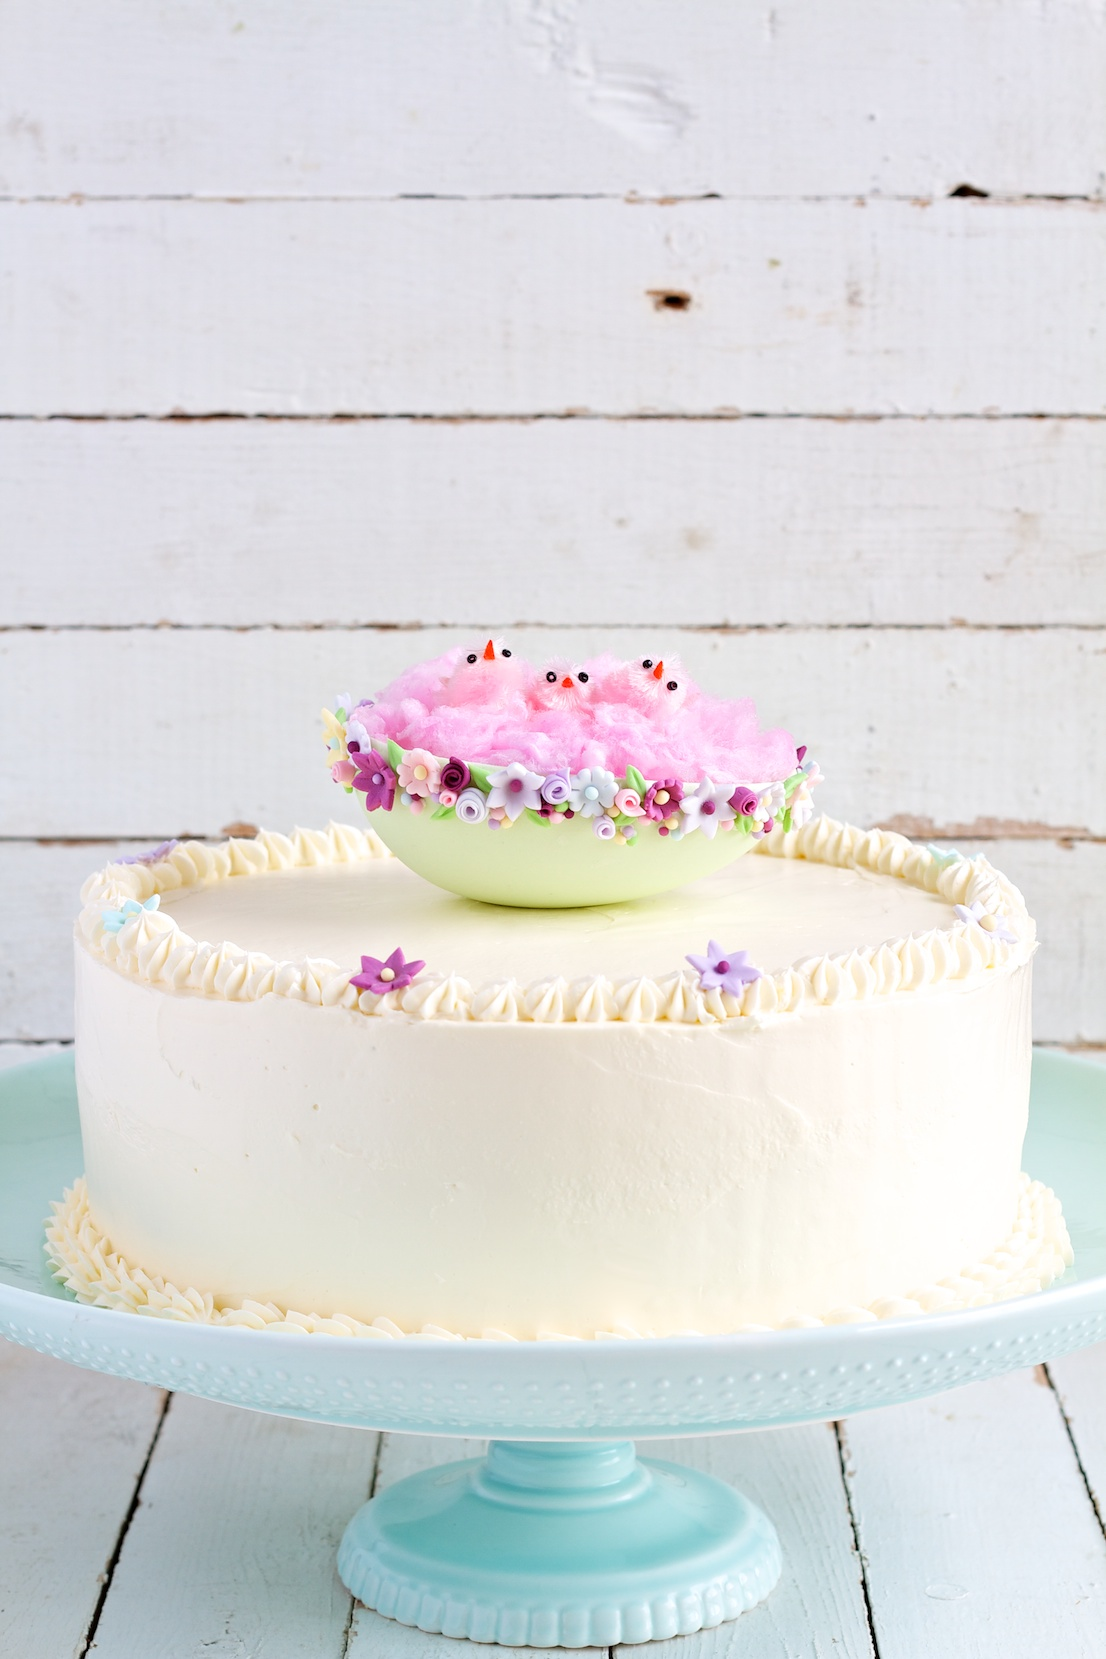 swiss meringue buttercream | movita beaucoup